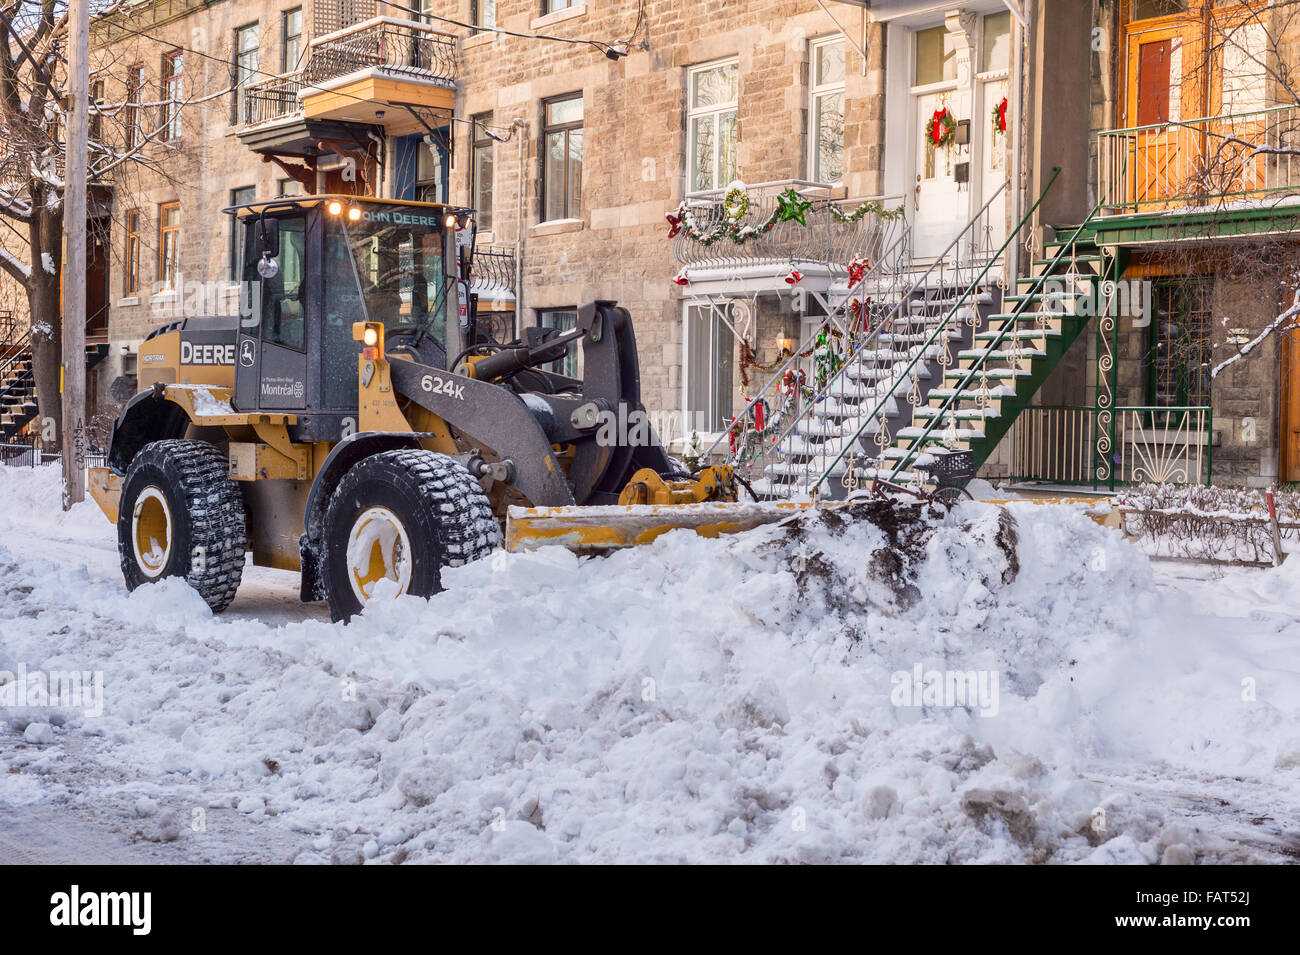 Montreal, Canada. 4rd January 2016. Snowplow removes snow during snow storm - Stock Image